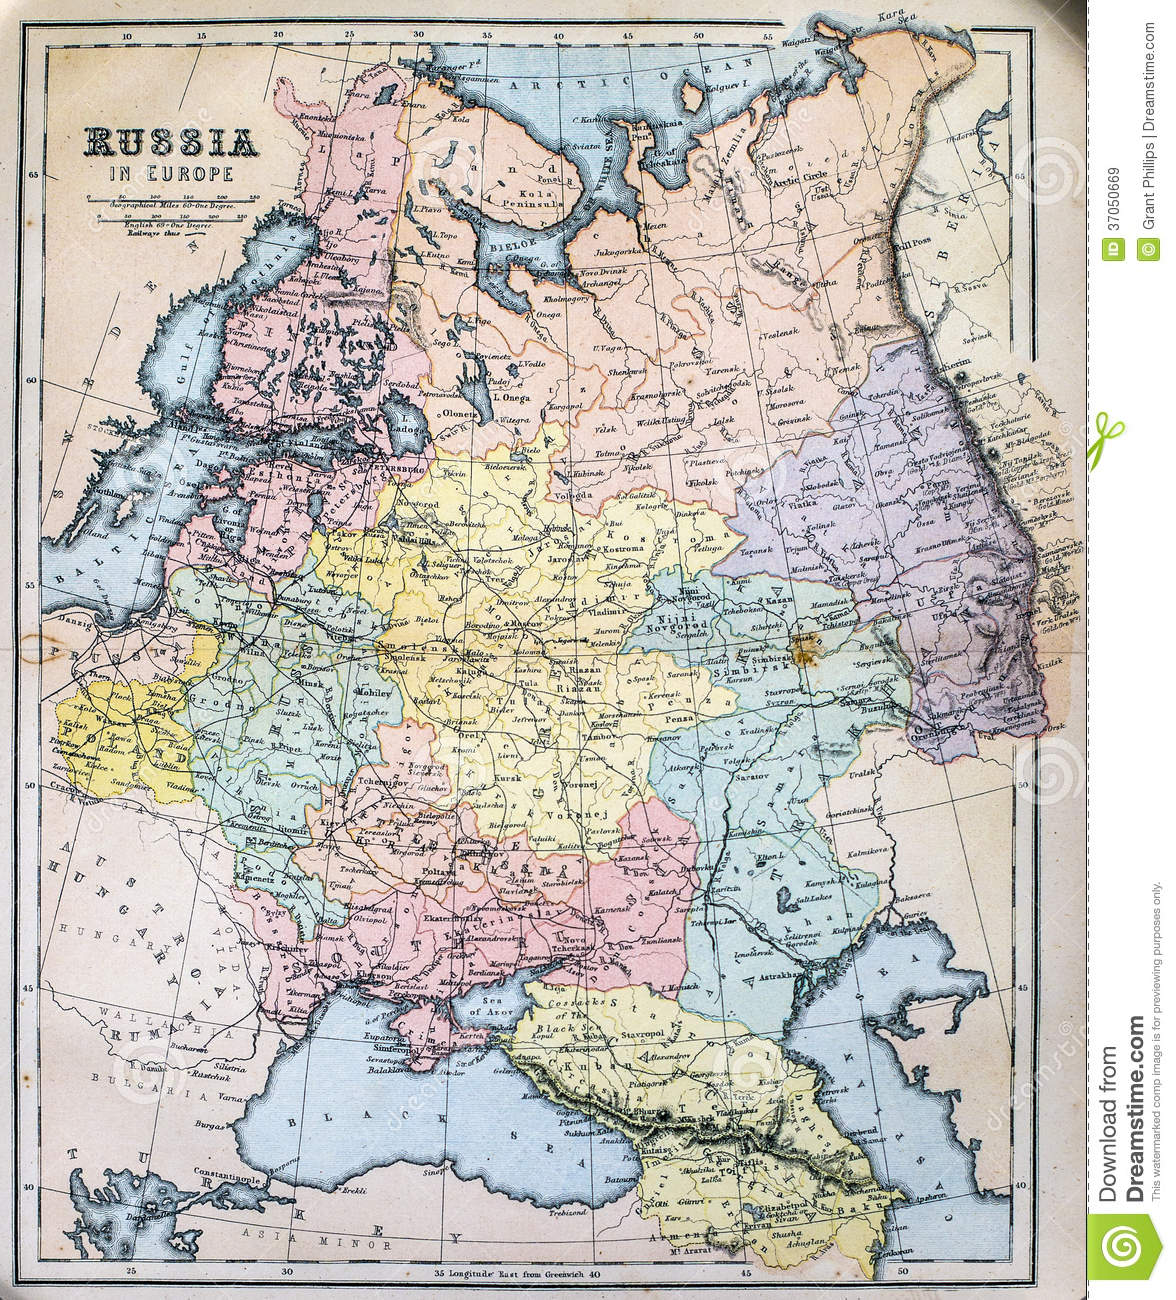 Antique Map Of Russia In Europe Stock Image Image Of 19th Mapping